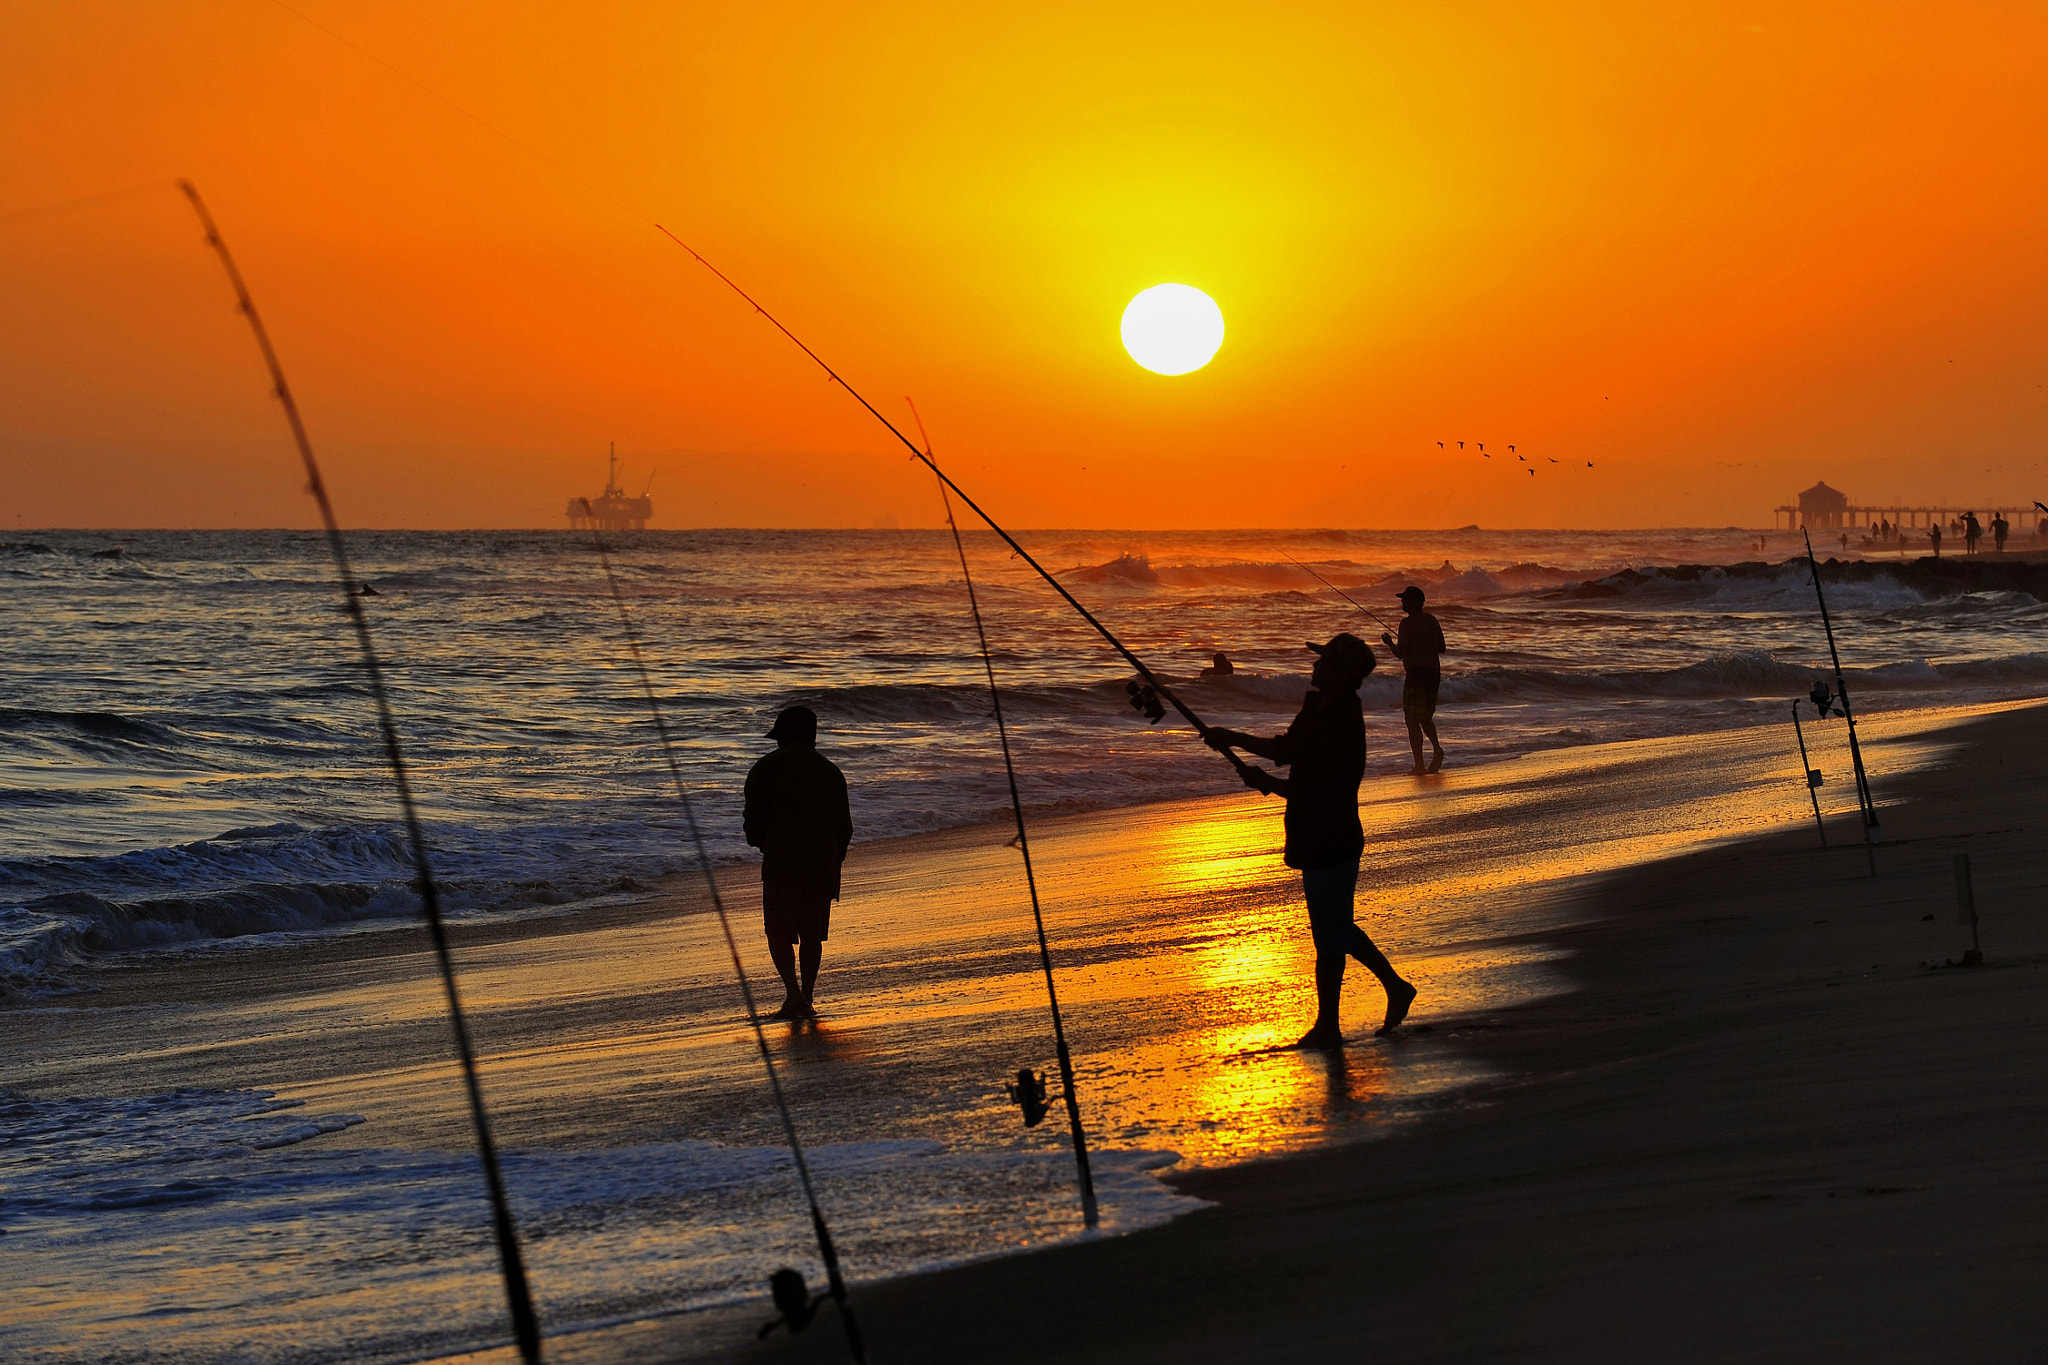 Photograph Surf Fishing at Sunset in Newport Beach - June 22, 2013 by Rich Cruse on 500px